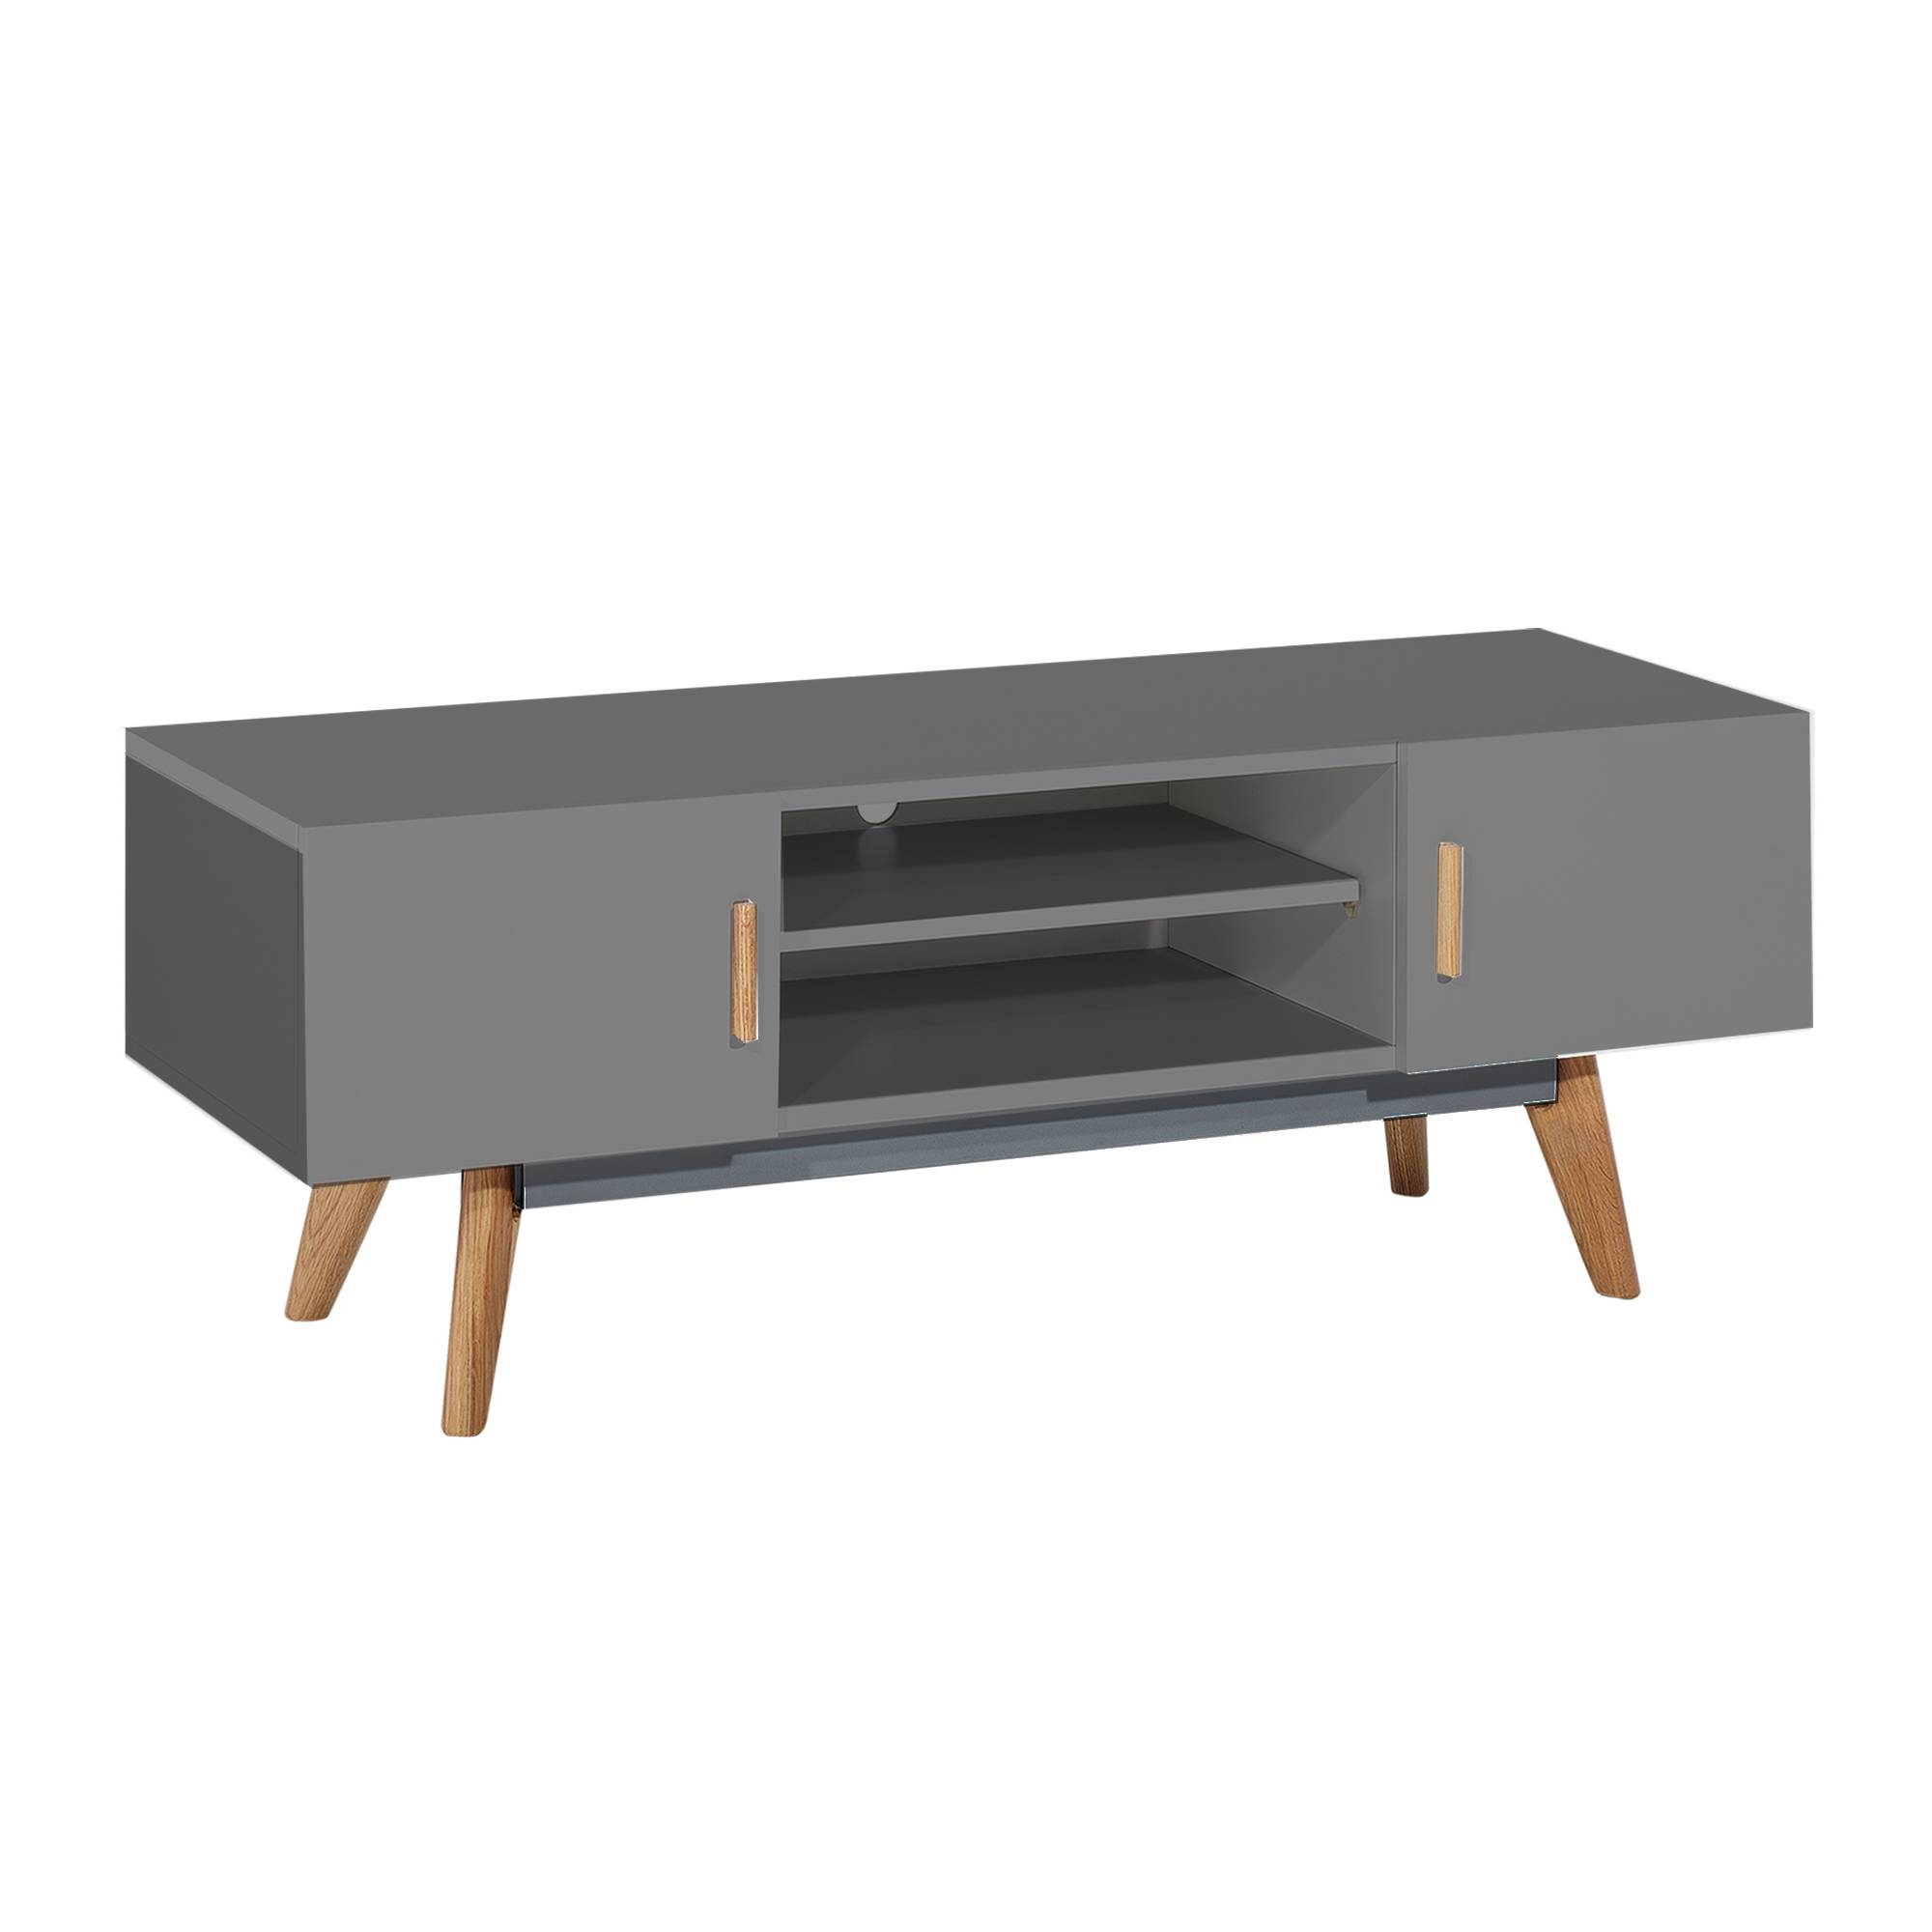 Stylish White Modern Tv Stand From Abreo Abreo Home Furniture With Regard To Scandinavian Tv Stands (View 12 of 15)